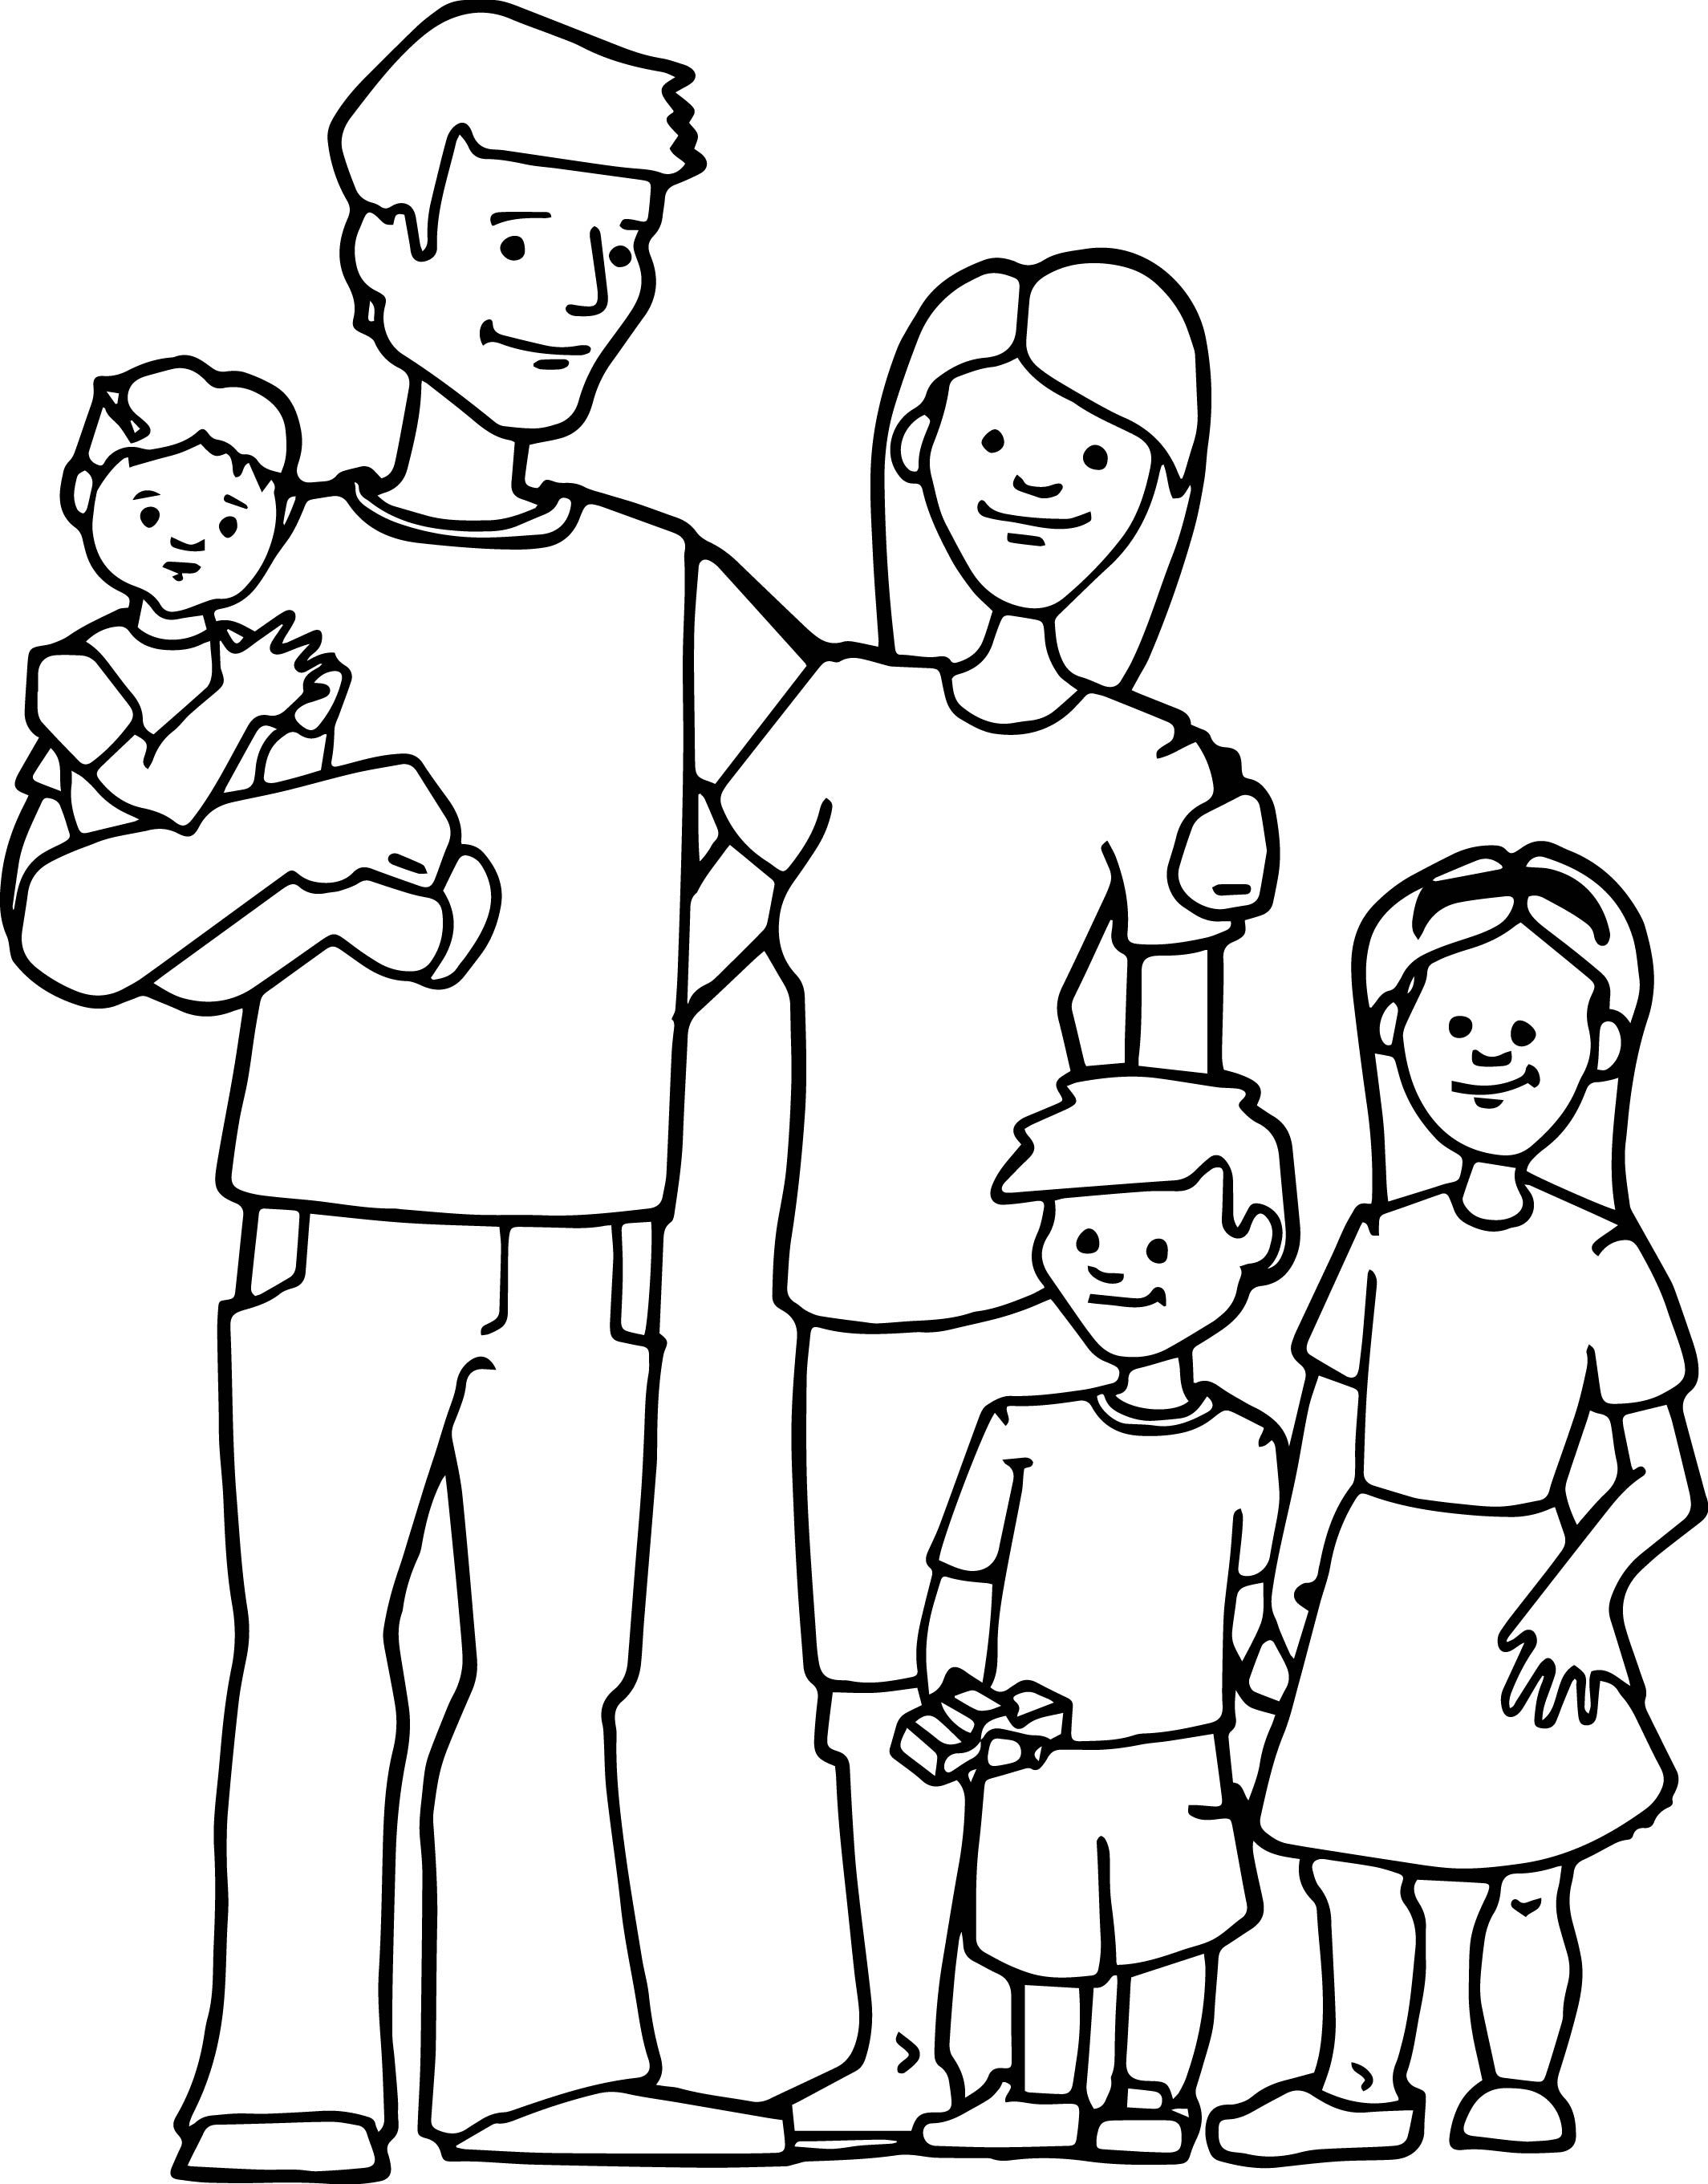 Awesome Family Kids Coloring Page | Wecoloringpage | Family